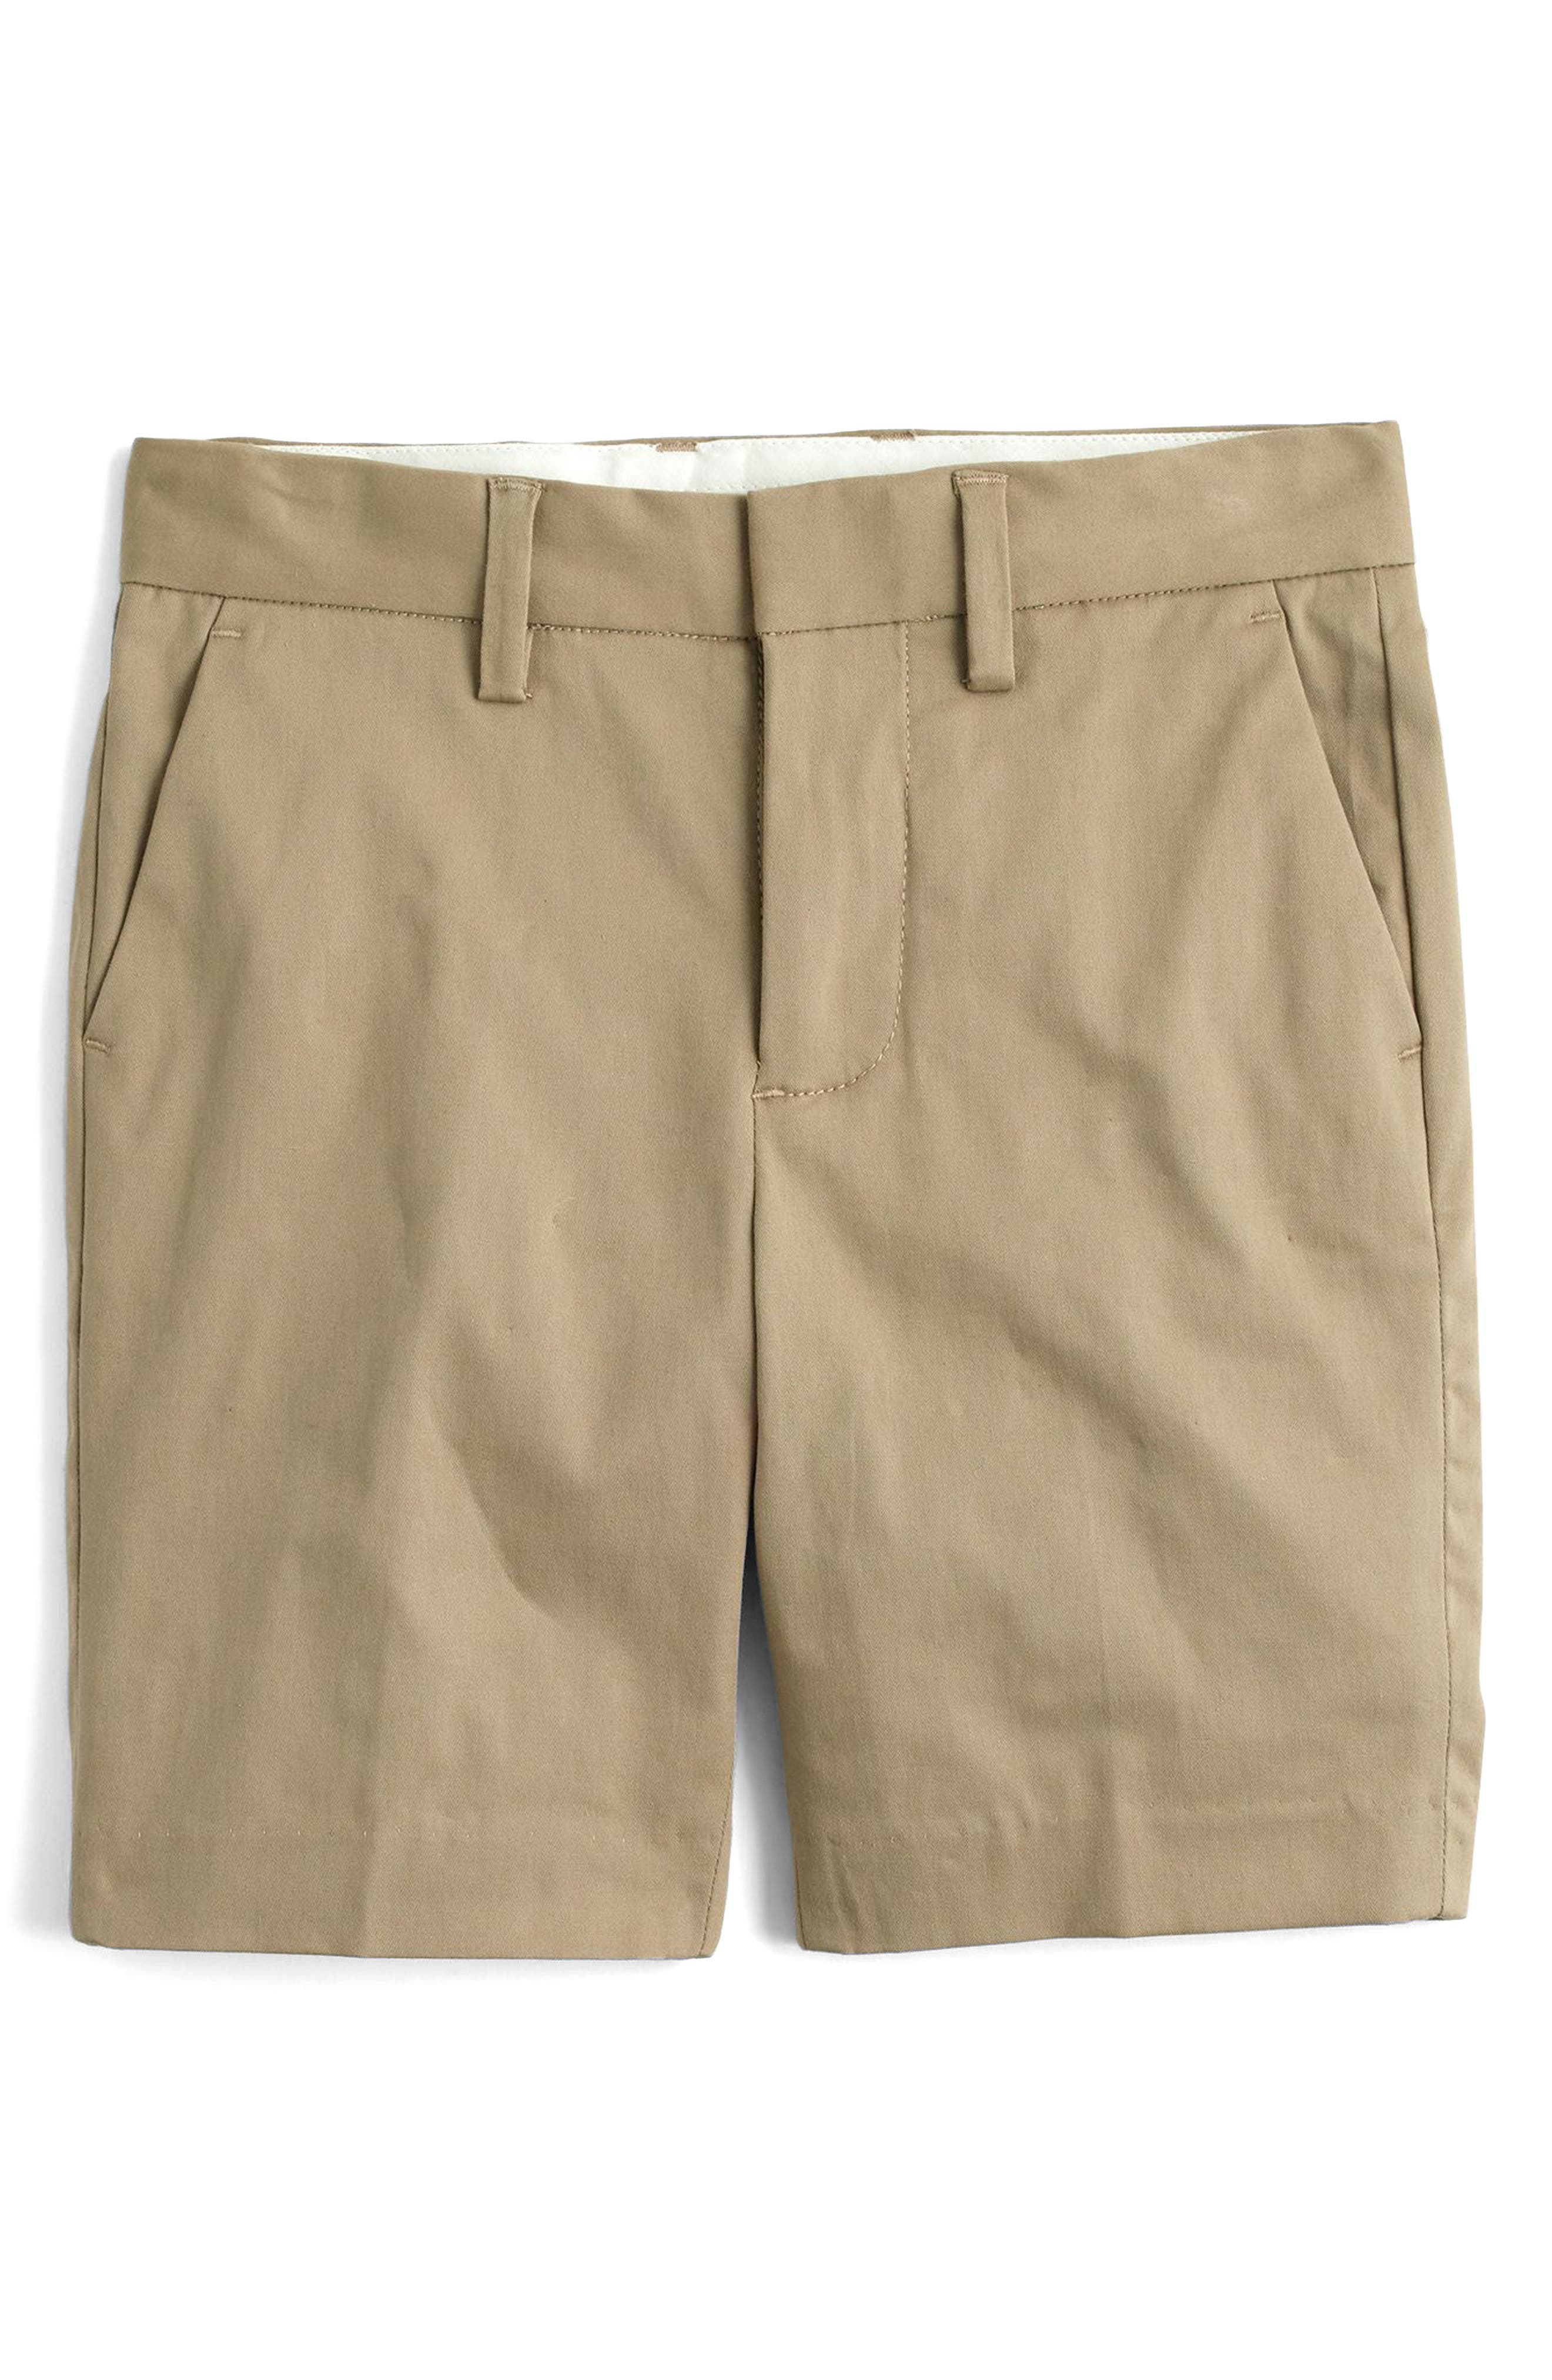 Alternate Image 1 Selected - crewcuts by J.Crew Ludlow Chino Shorts (Toddler Boys, Little Boys & Big Boys)